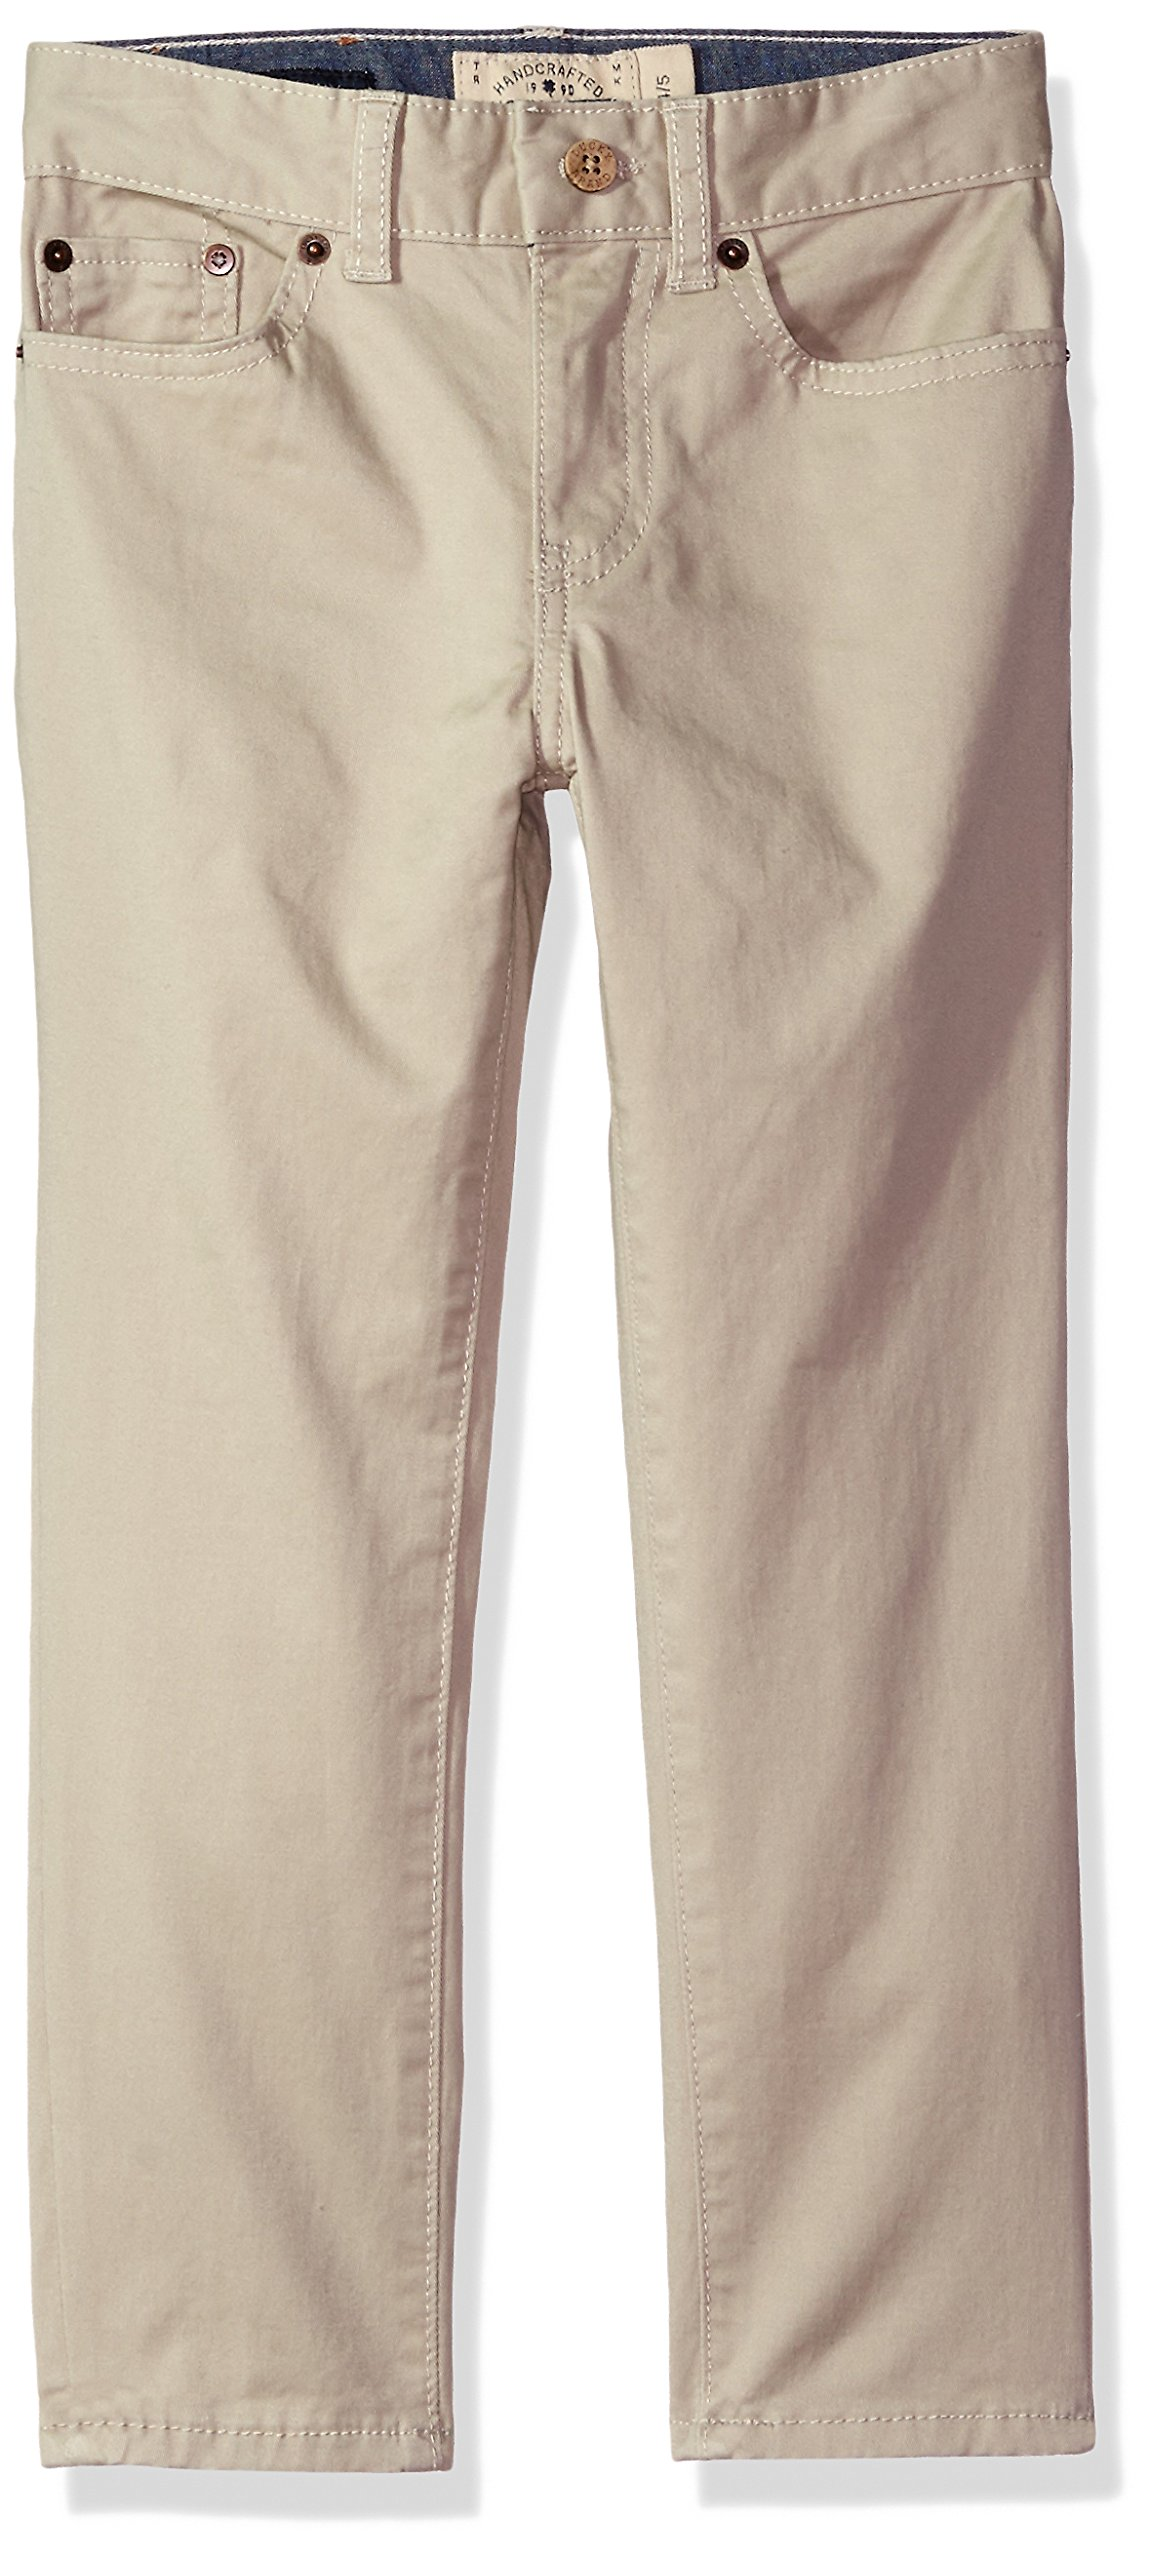 Lucky Brand Boys' Big 5 Pocket Stretch Twill Pant, Light Stone, 10